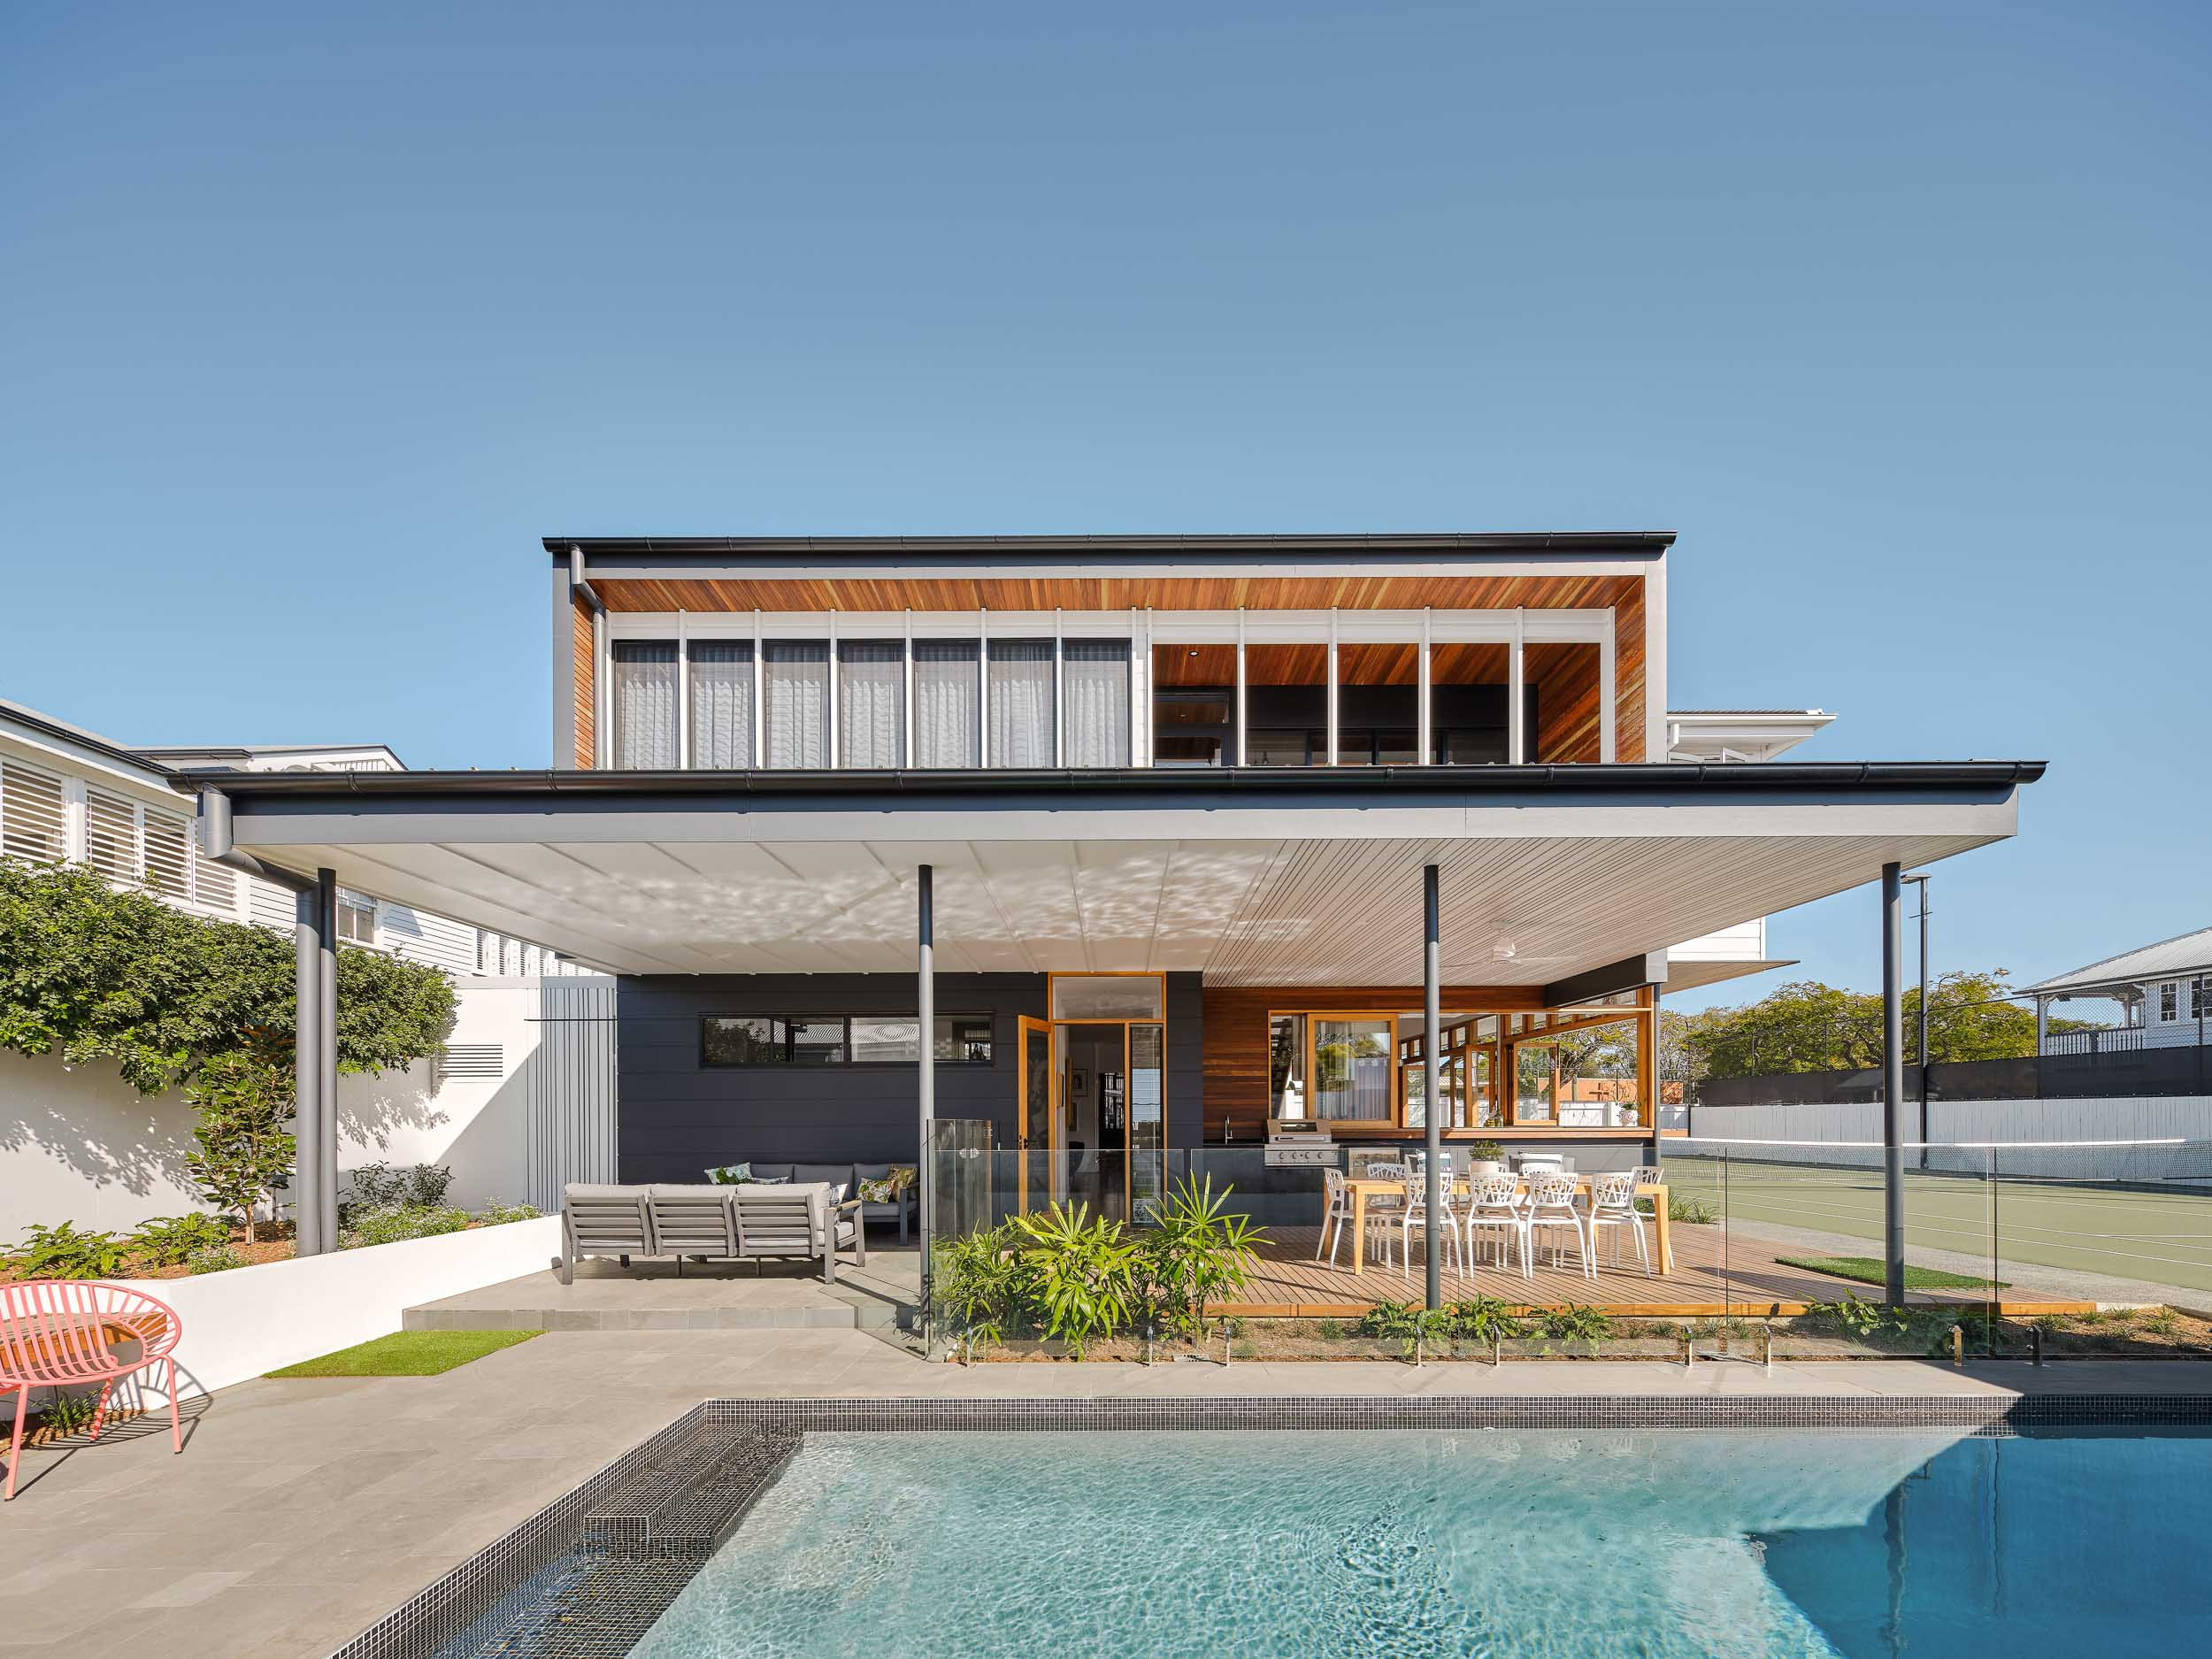 The pool and bbq area is directly connected to the kitchen but creates also an intimate private urban oasis